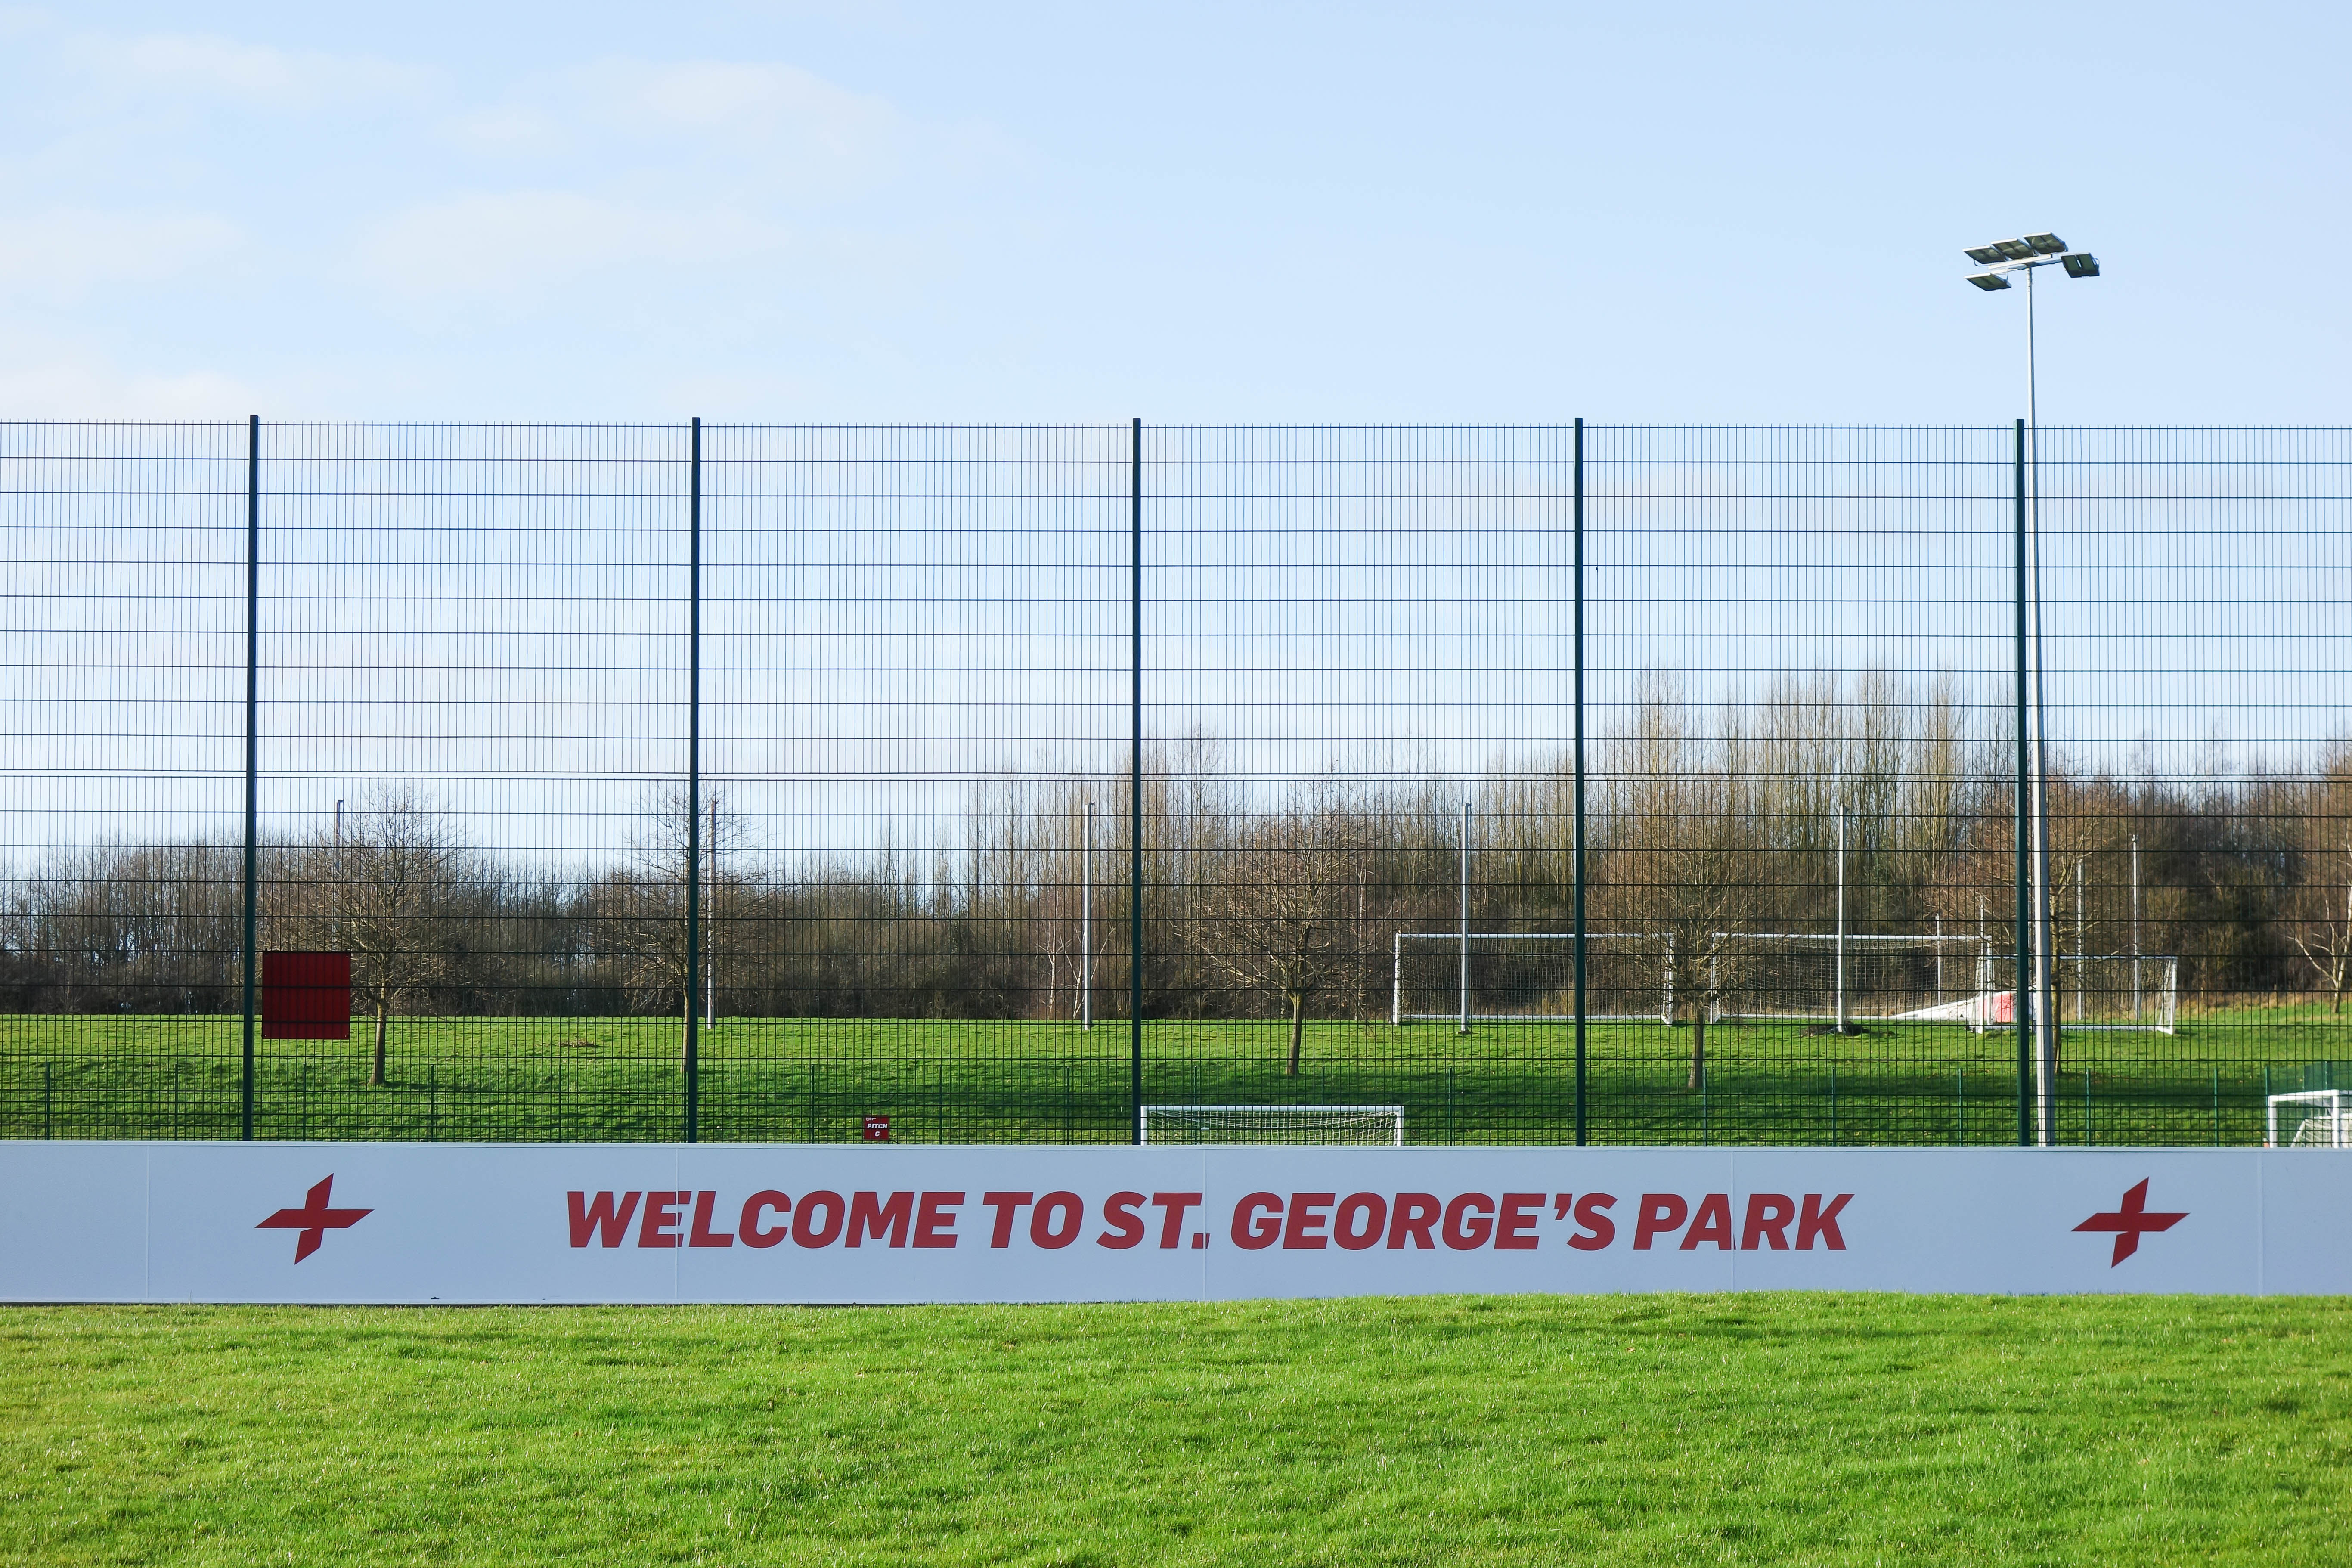 Welcome to St Georges Park